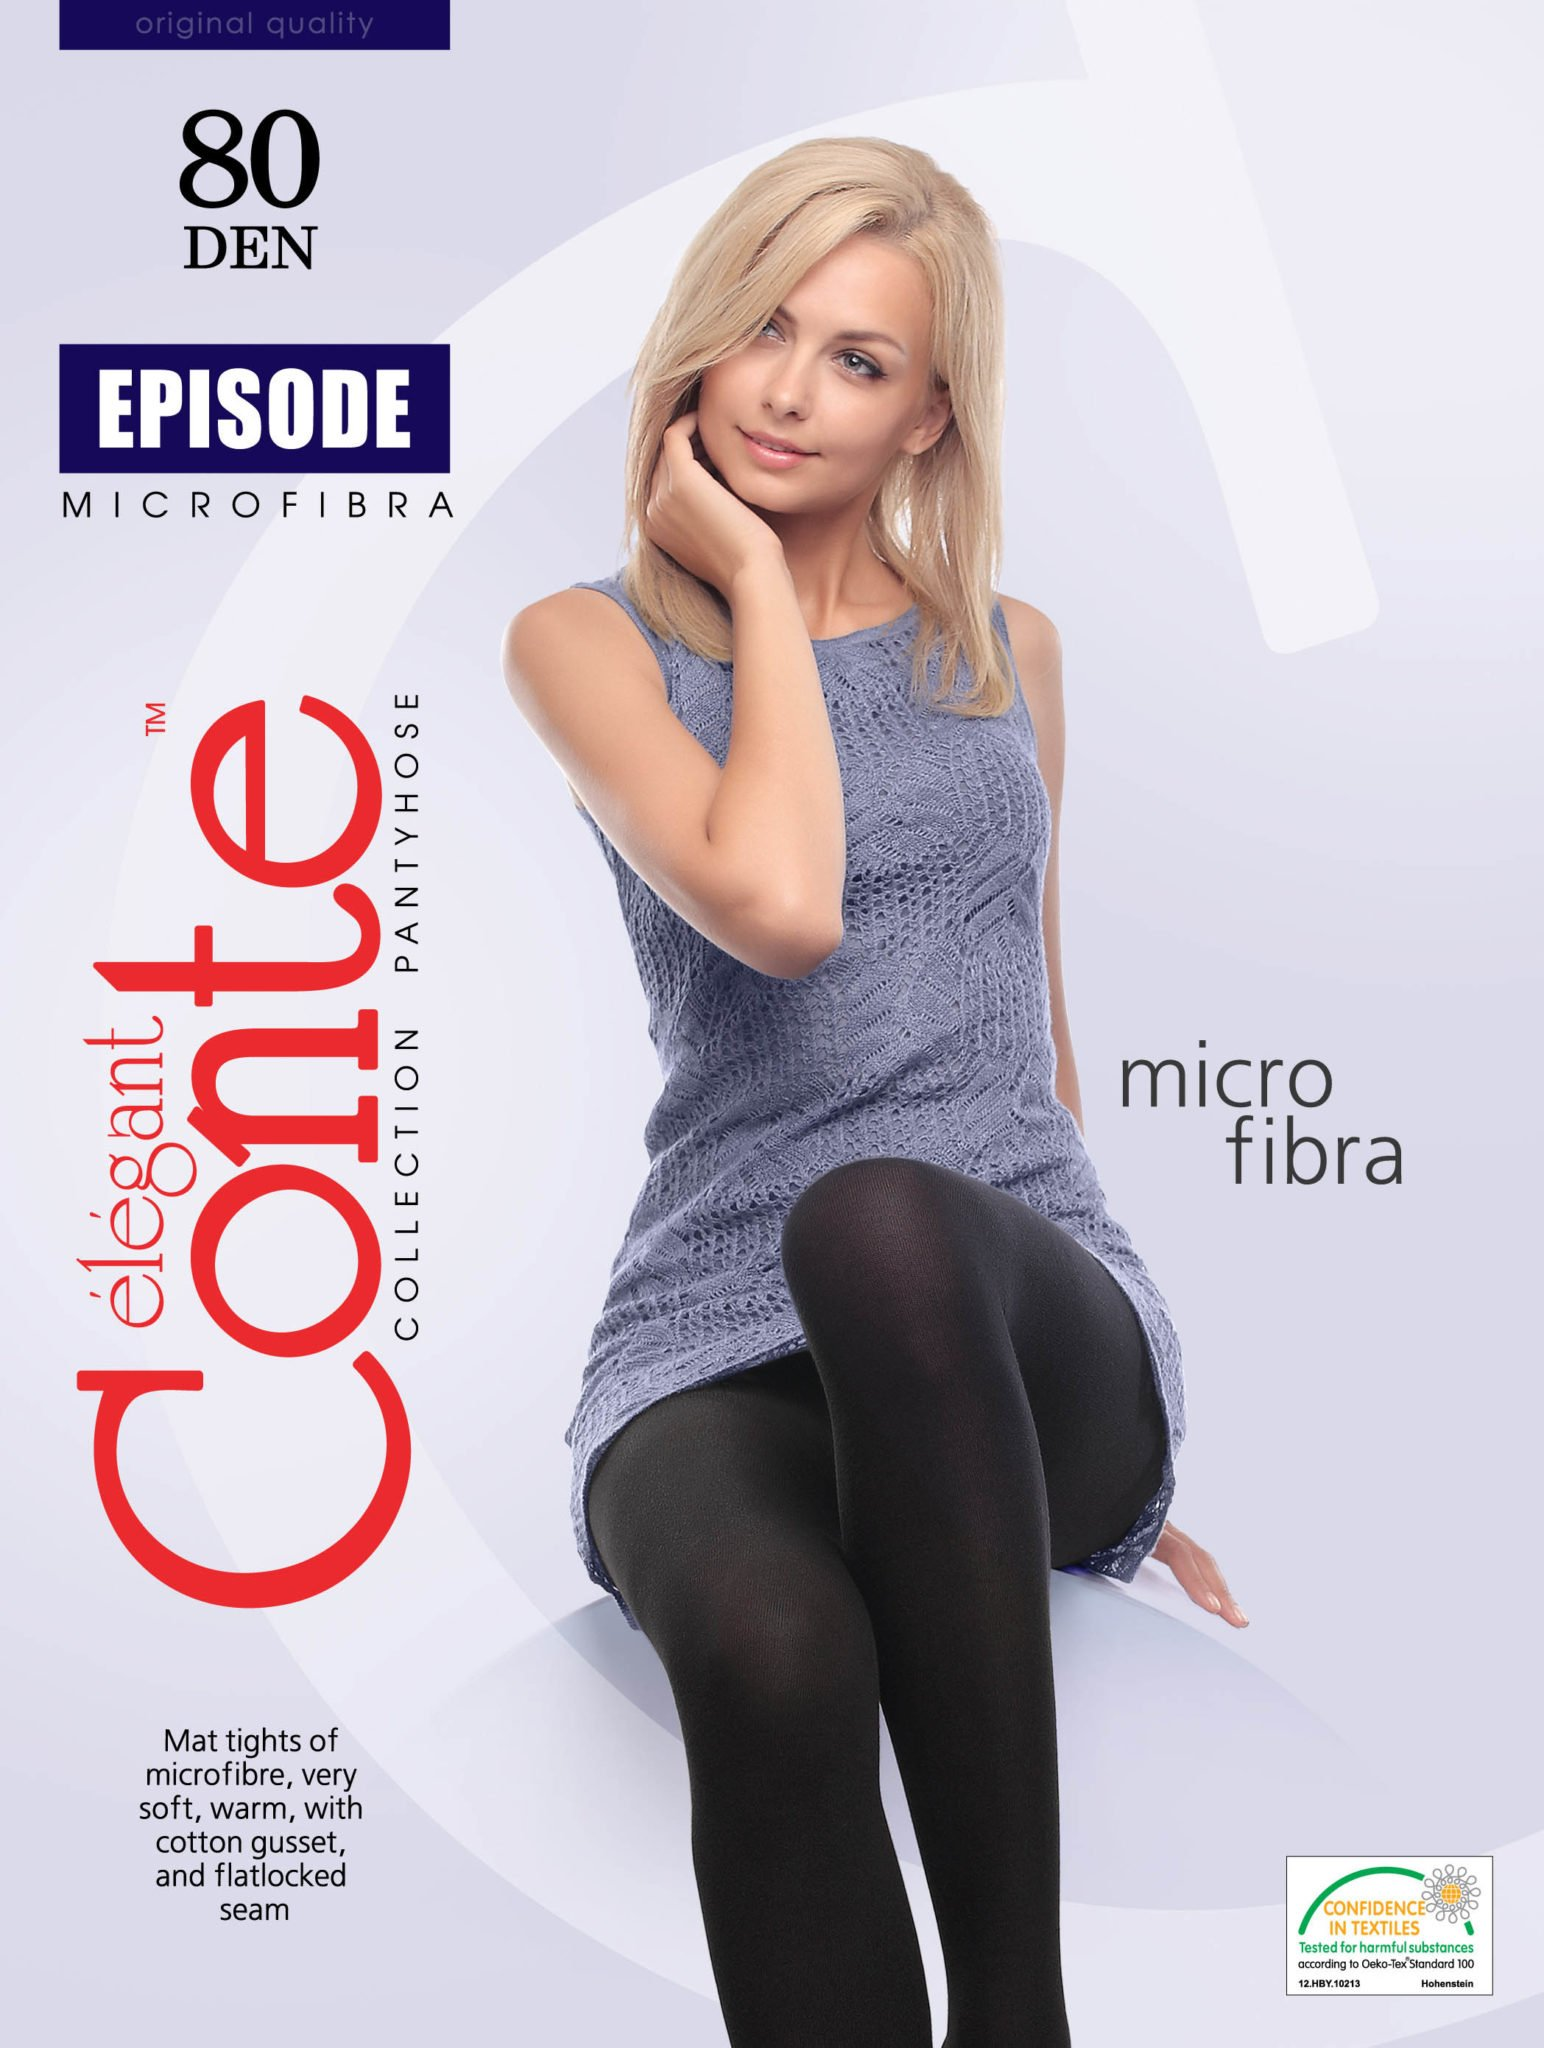 WARM DENSE MICROFIBRA TIGHTS